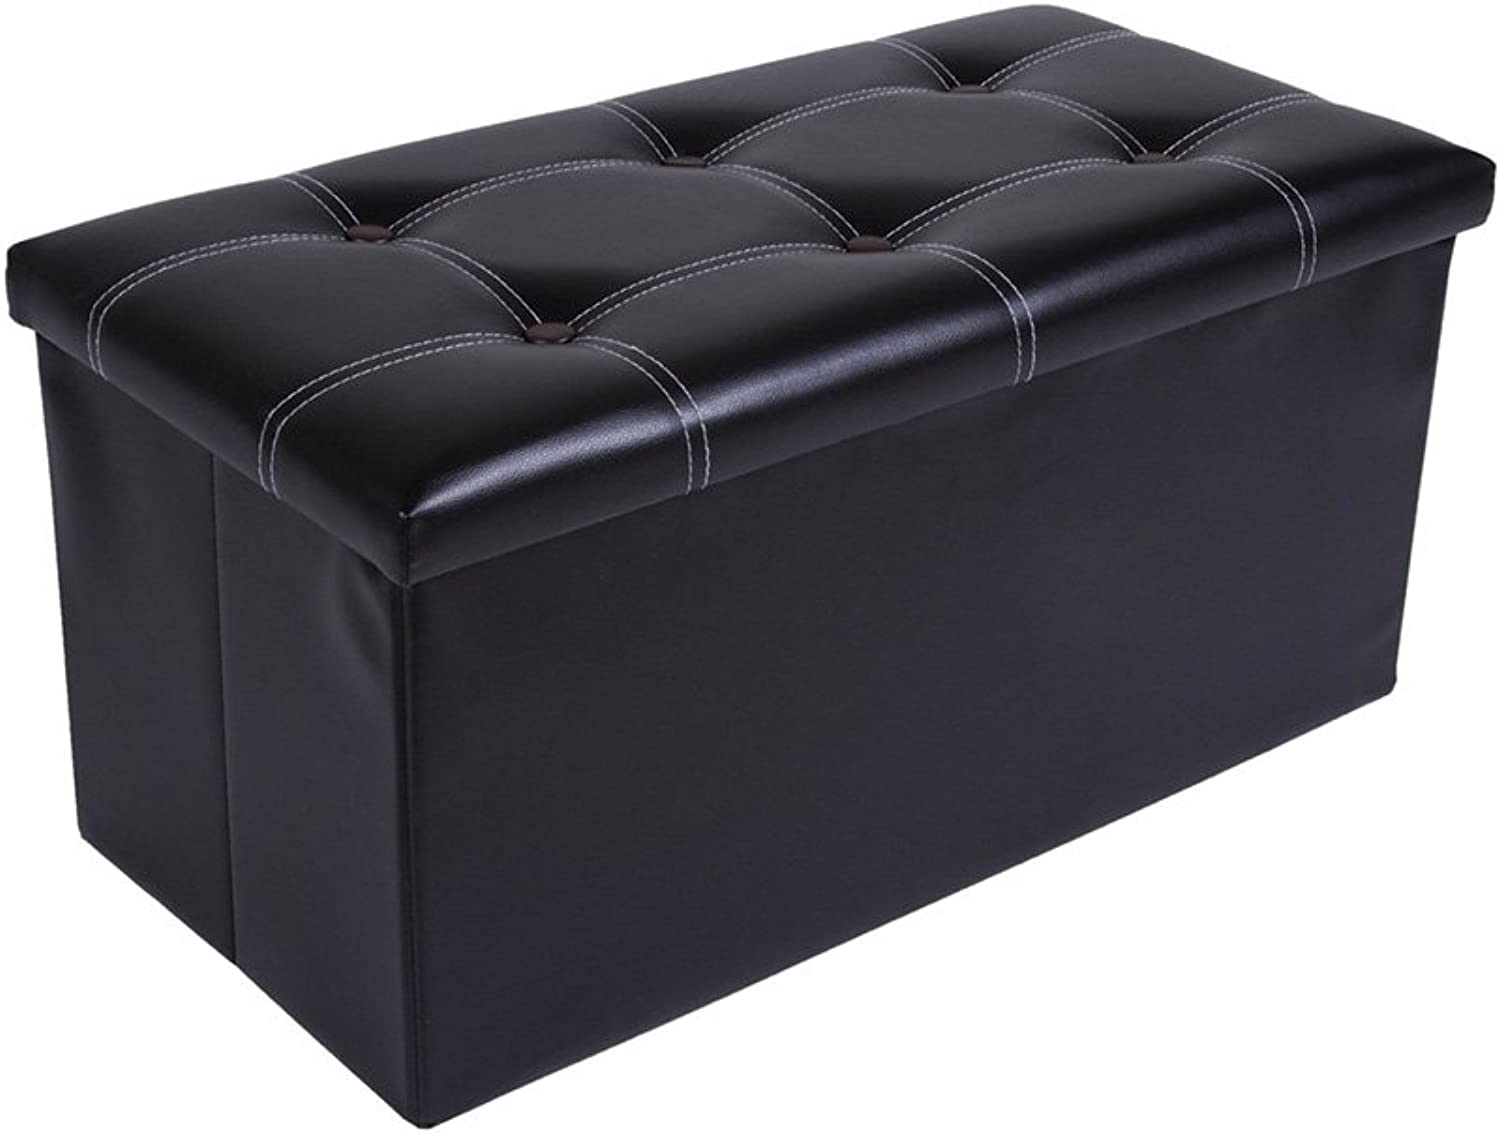 Modern Decorative Design Simple Footstool Foldable Storage Stool Sofa Dressing Change shoes Stool Upholstered Small Stool Pouf Storage Beanbag Footrest Sturdy and Beautiful (color   E)